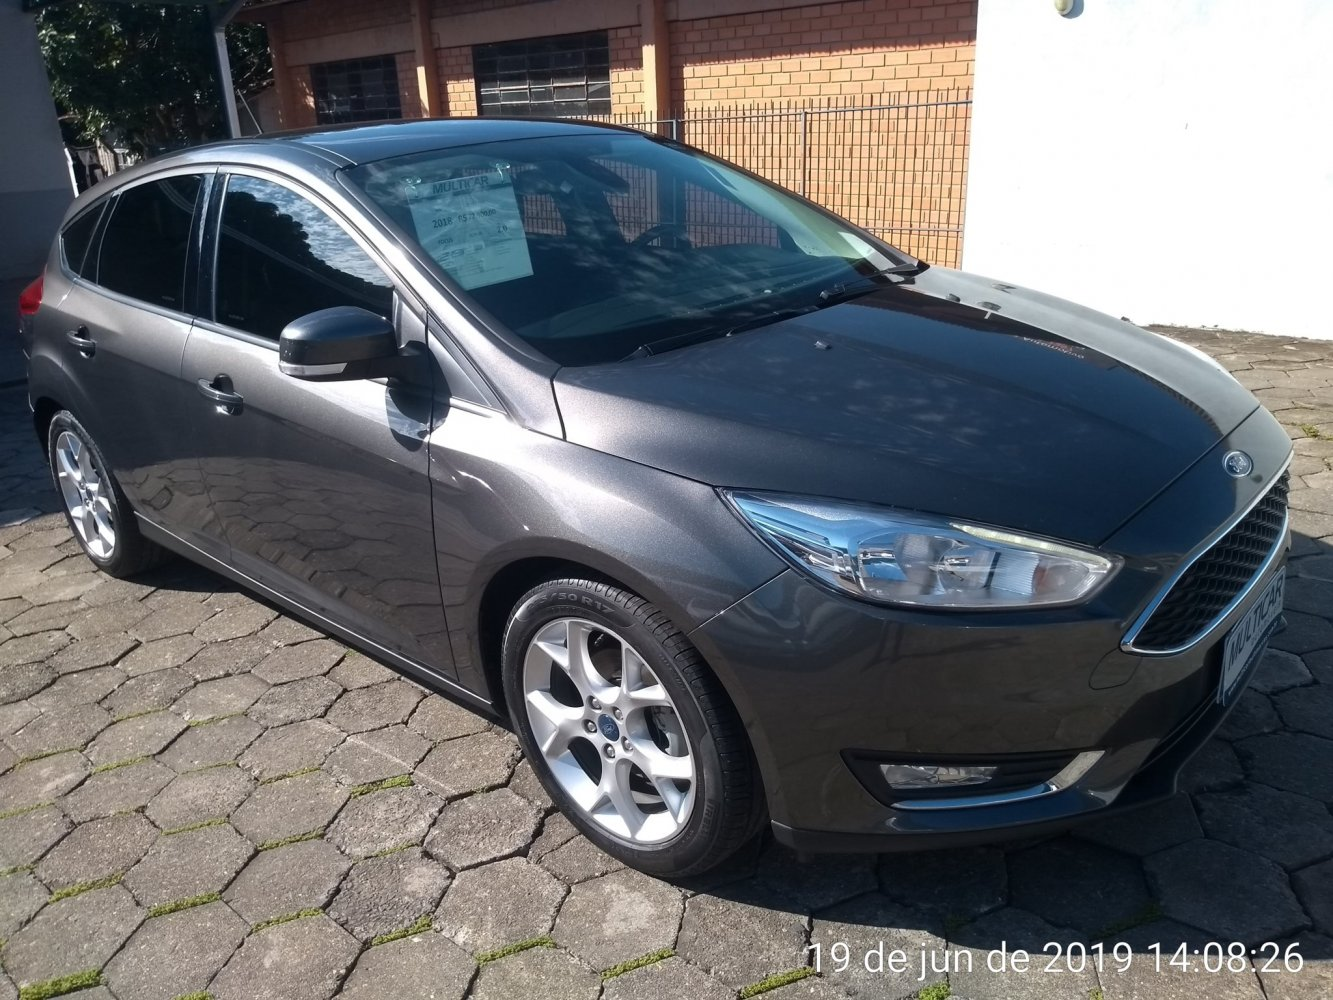 FOCUS 2.0 SE PLUS POWERSHIFT